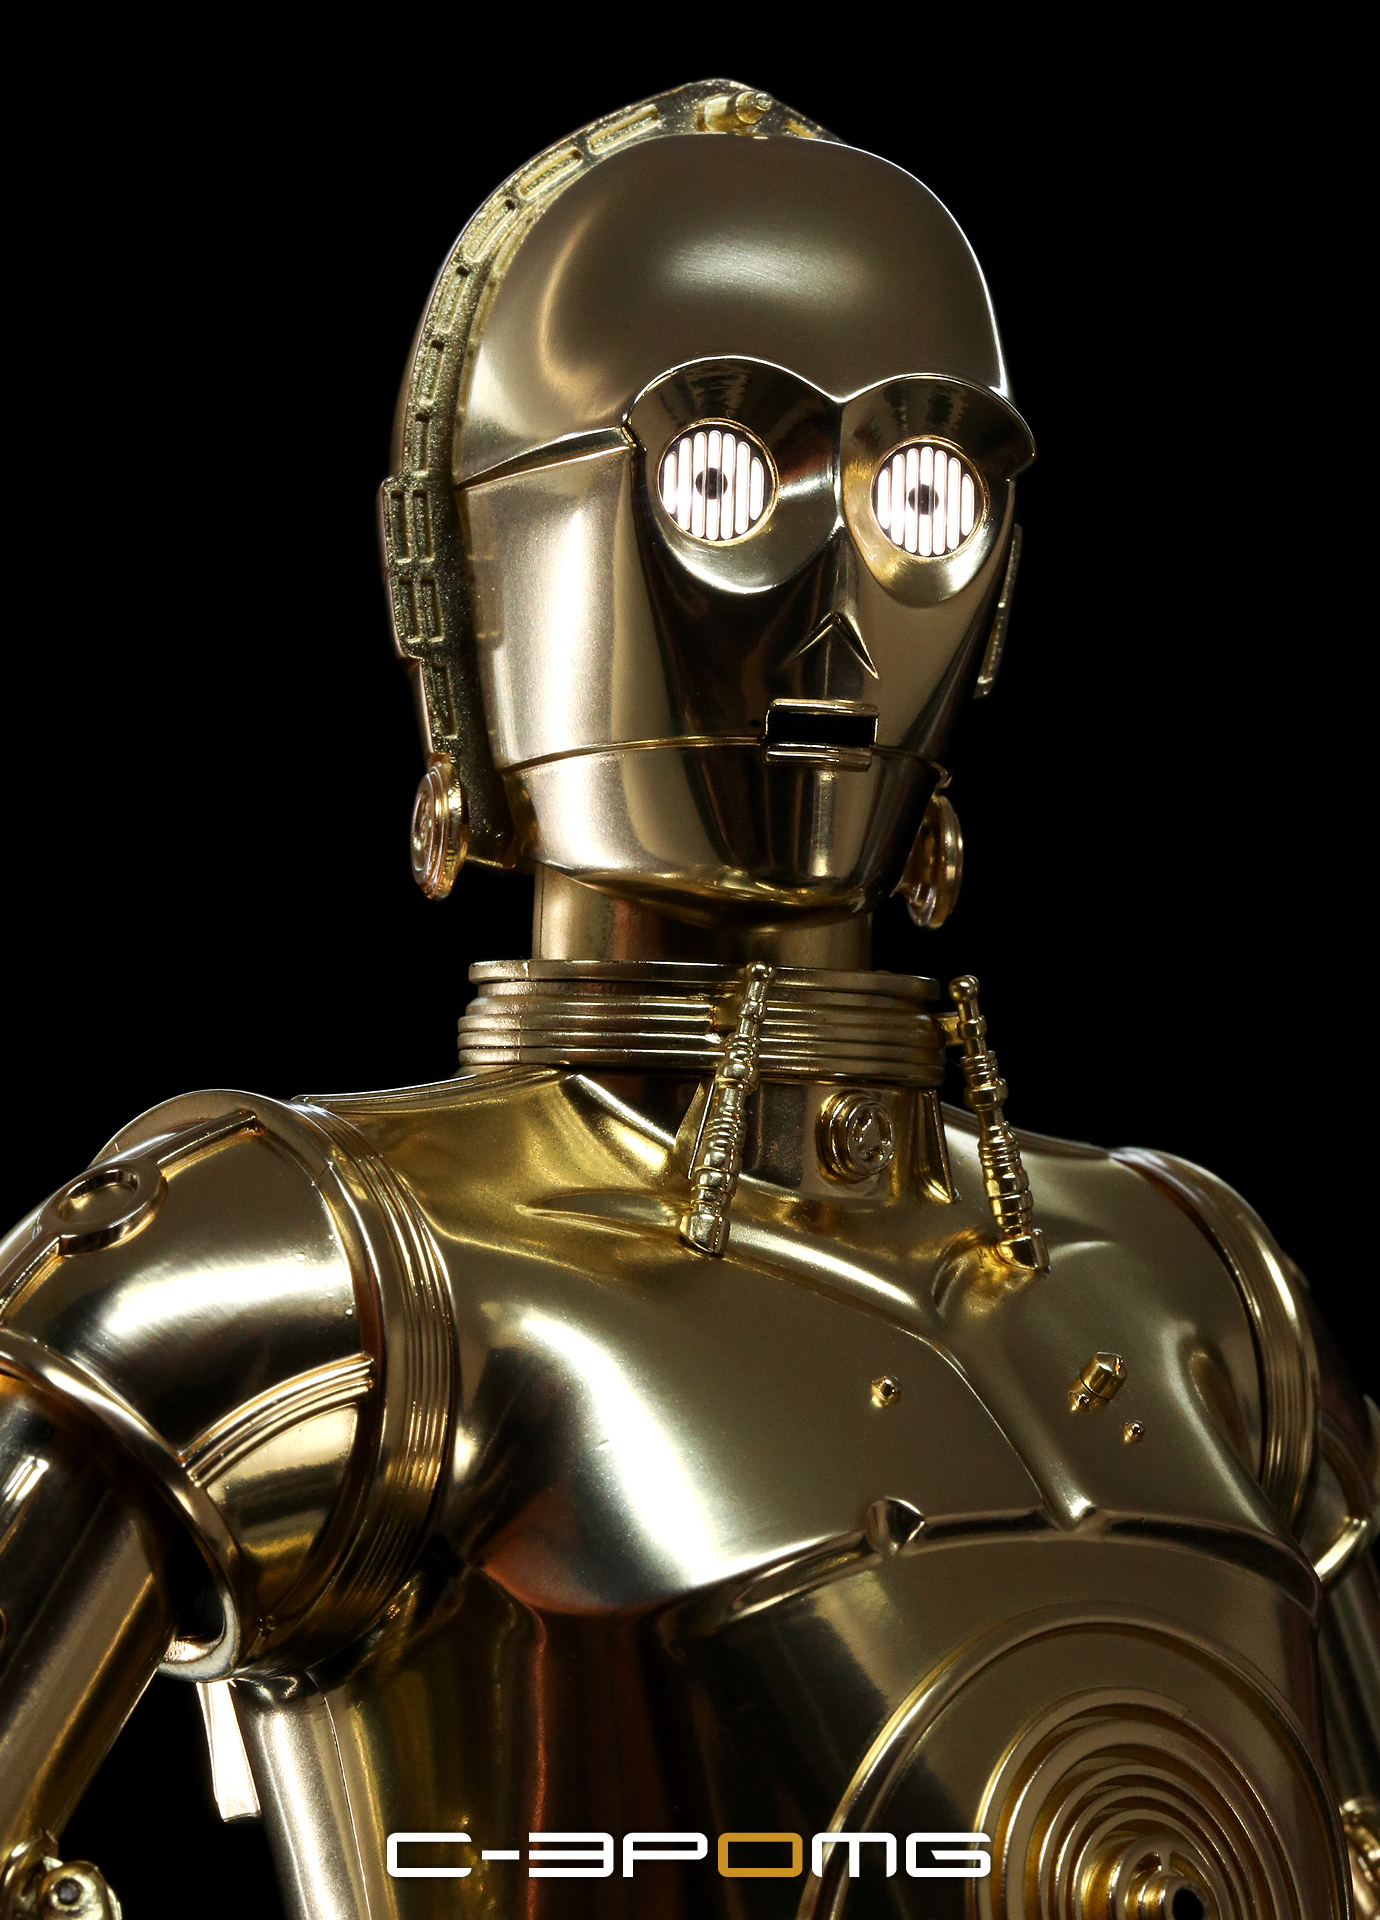 [Bandai] Star Wars: C-3PO - Perfect Model 1/6 scale - LANÇADO!!! - Página 2 C-3PO1010_zpsdb093757